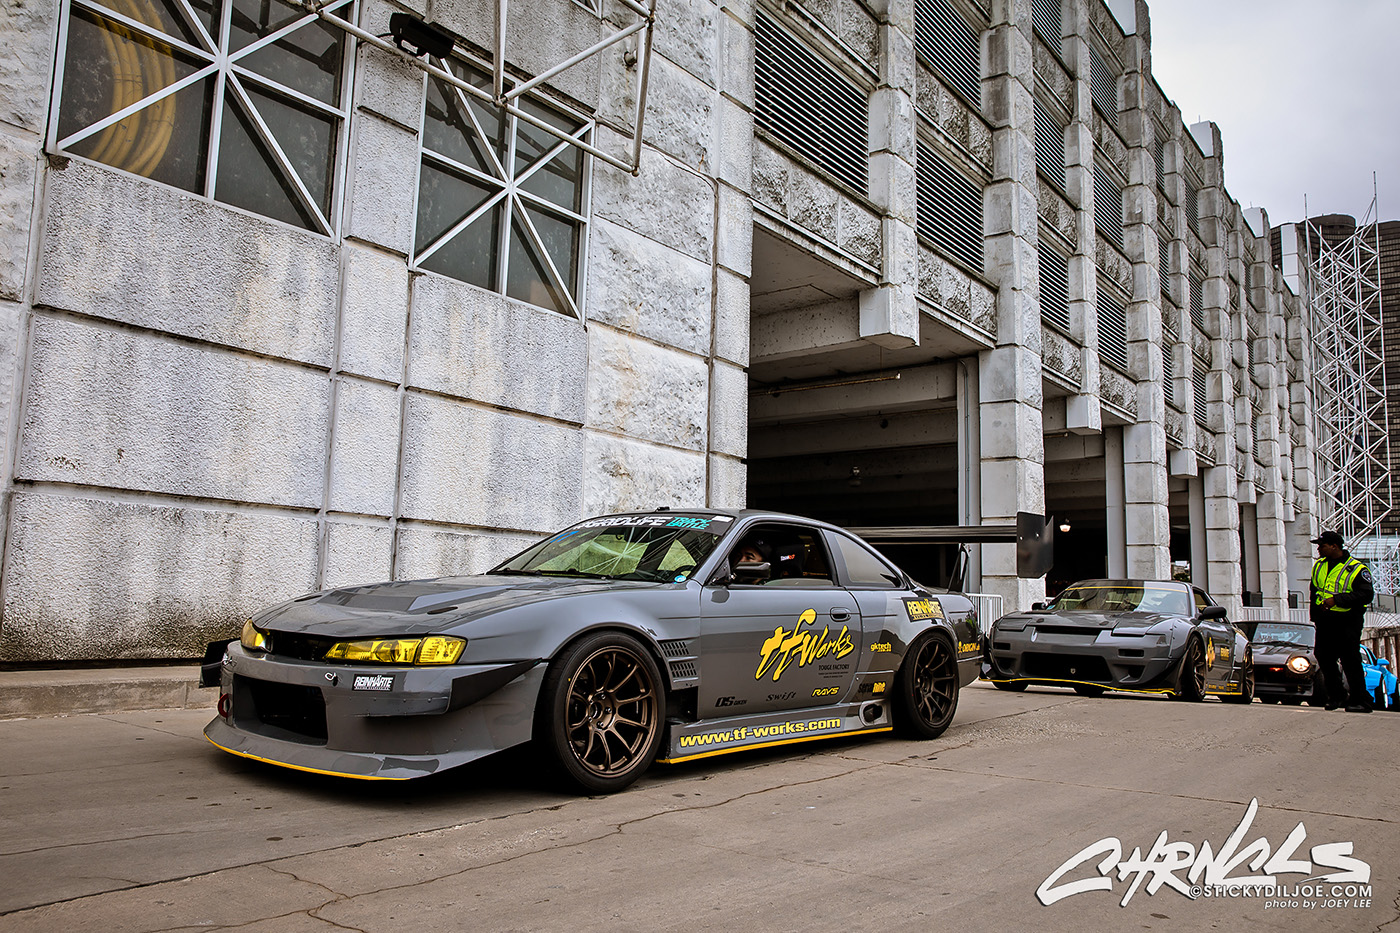 Wekfest Chicago 2018 Coverage… Part 1…